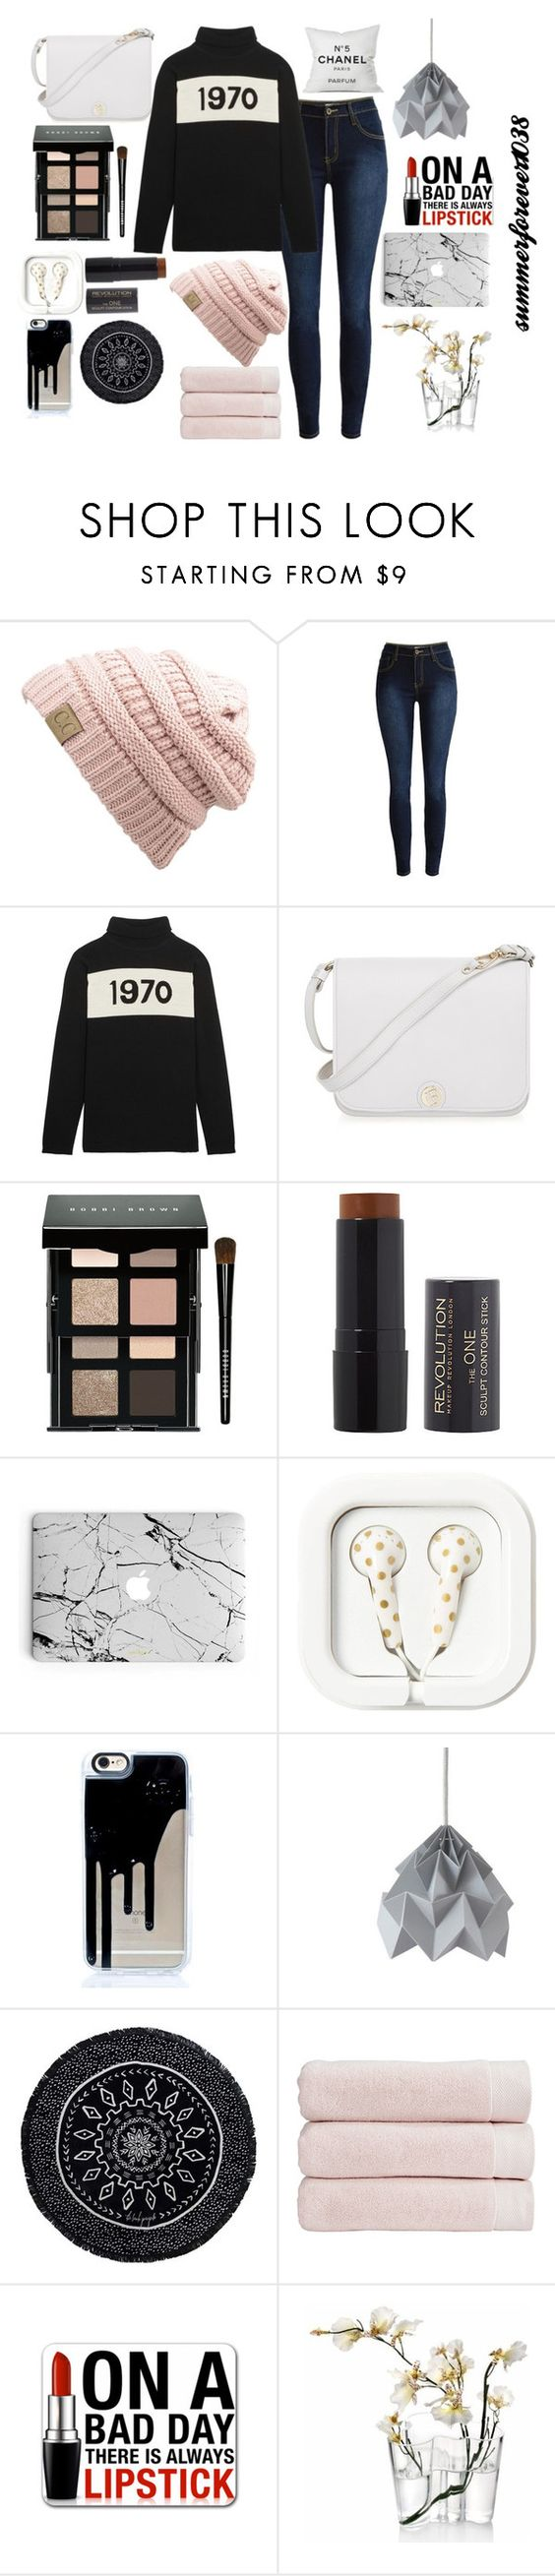 """""""Untitled #18"""" by summerforever1038 ❤ liked on Polyvore featuring Bella Freud, Furla, Bobbi Brown Cosmetics, The Beach People, Christy, iittala and Chanel"""